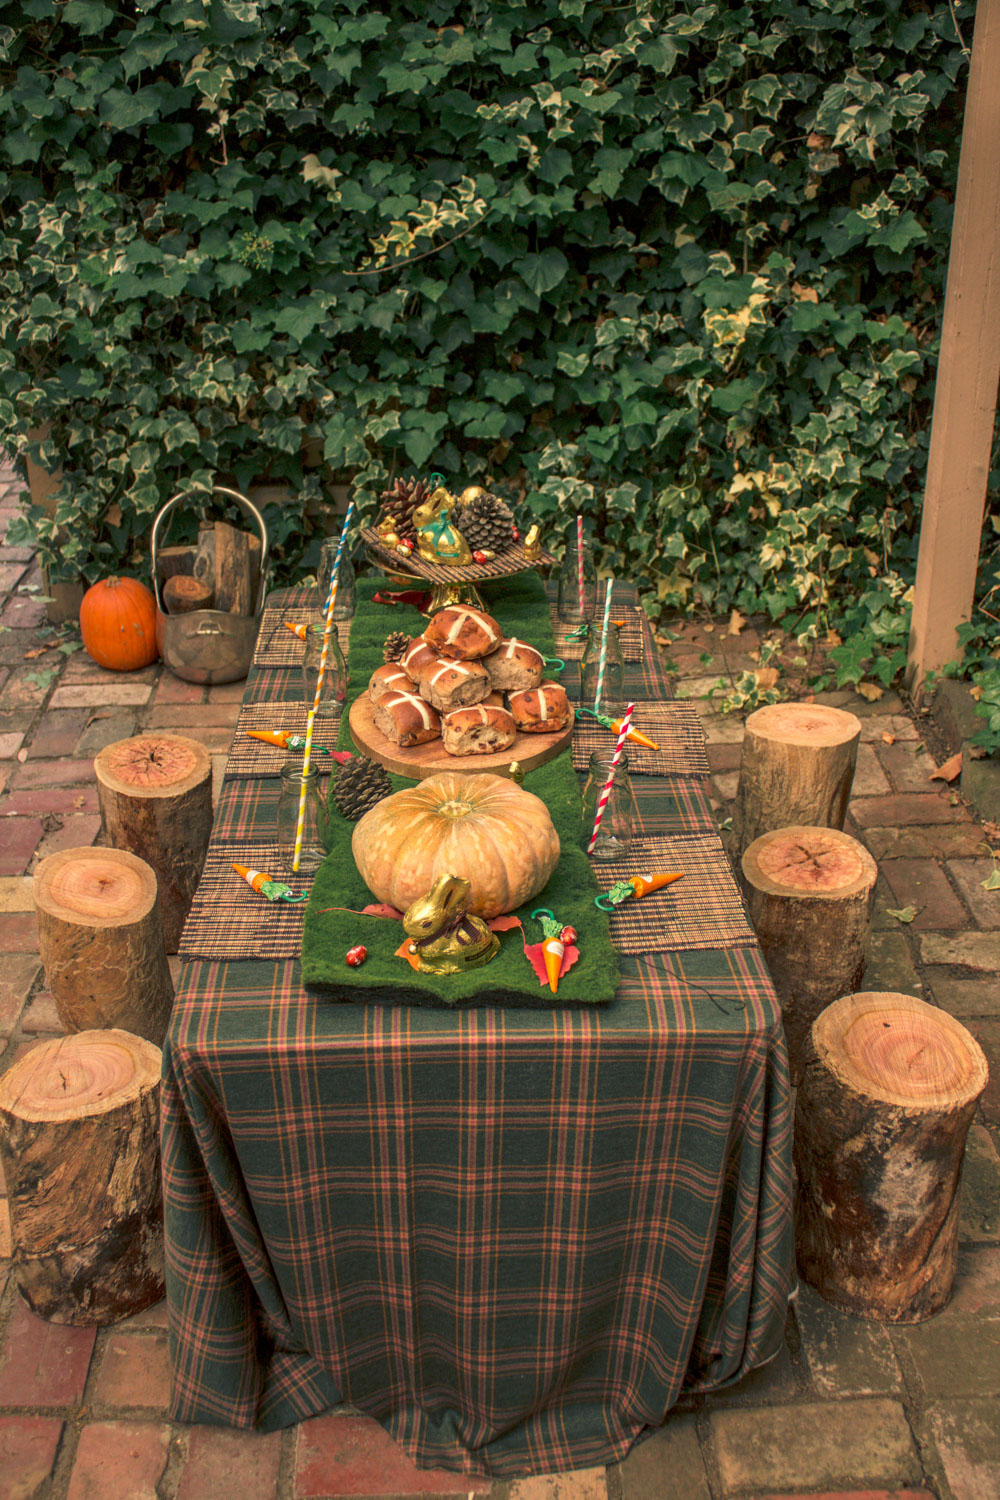 Children easter table for autumn themed easter egg hunt. Table decorated with pumpkins, hot cross buns, pine cones and chocolate carrots and wooden log stools